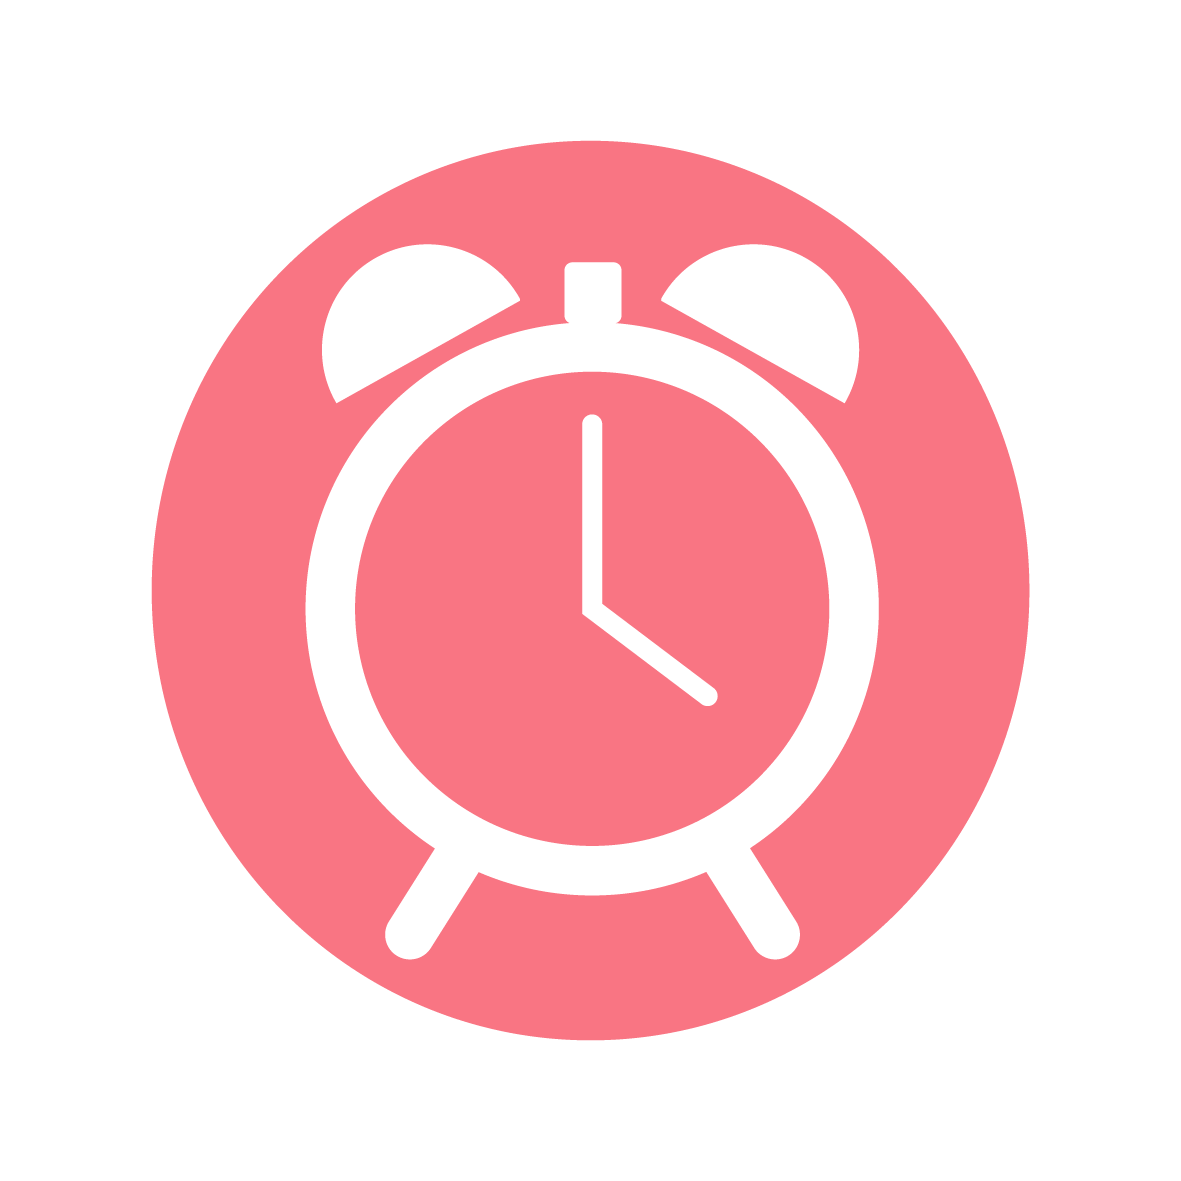 kisspng-time-clock-computer-icons-simple-english-wikipedia-clock-5ab59b5d9fc726.18201103152185122965